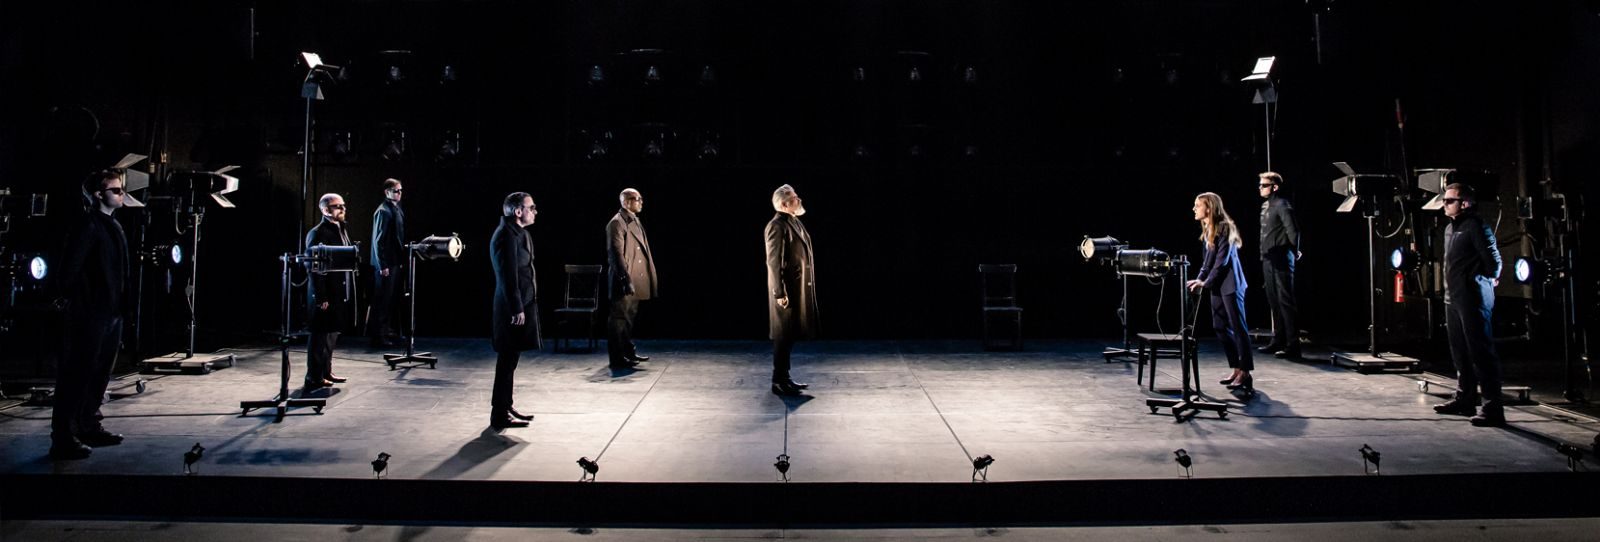 'Purer theatre': the striking stage design of Don Carlos